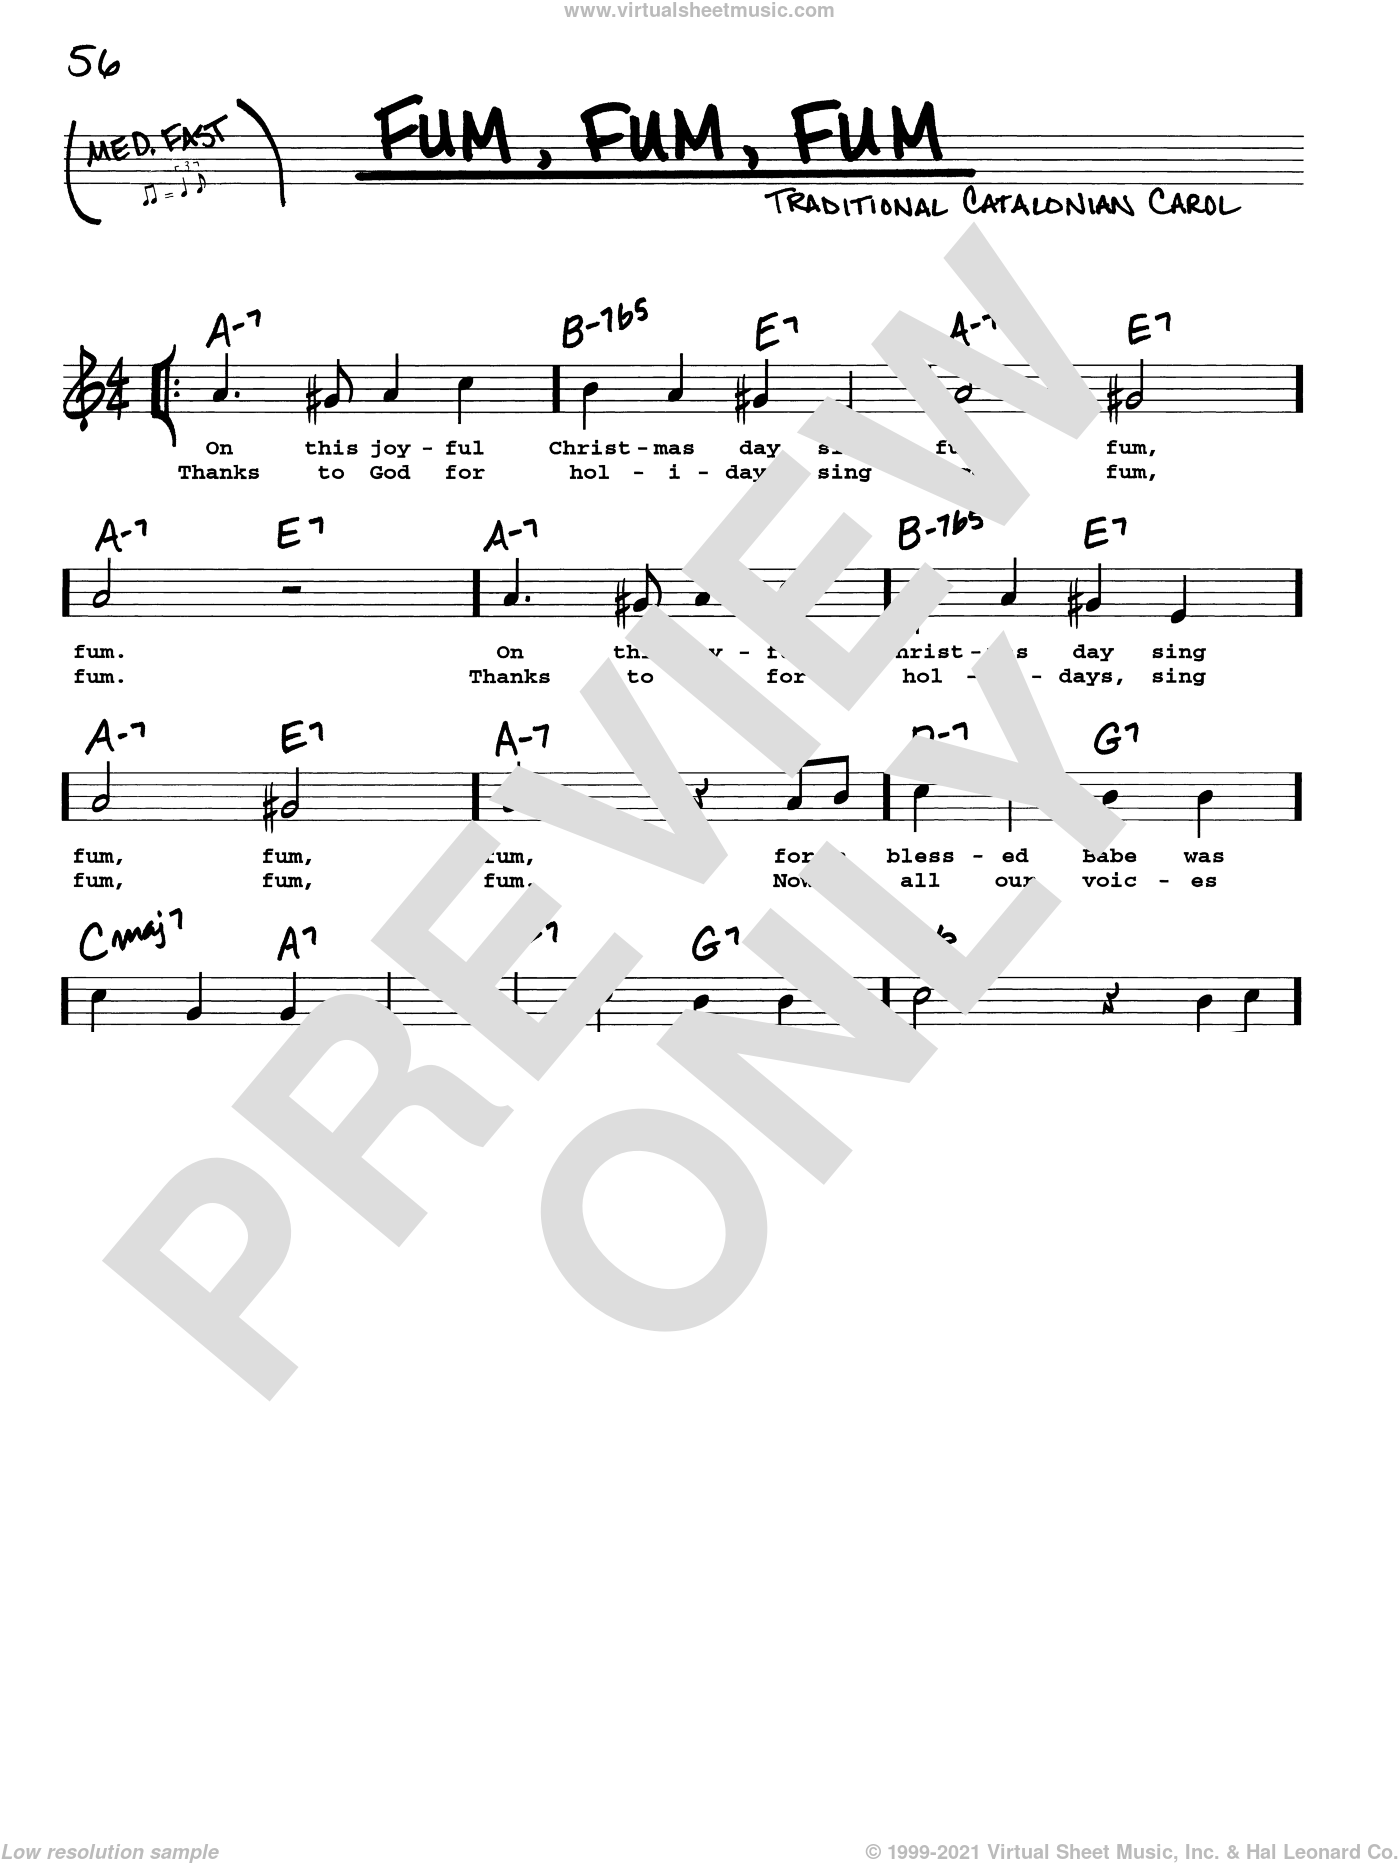 Fum, Fum, Fum sheet music for voice and other instruments (real book with lyrics), intermediate skill level